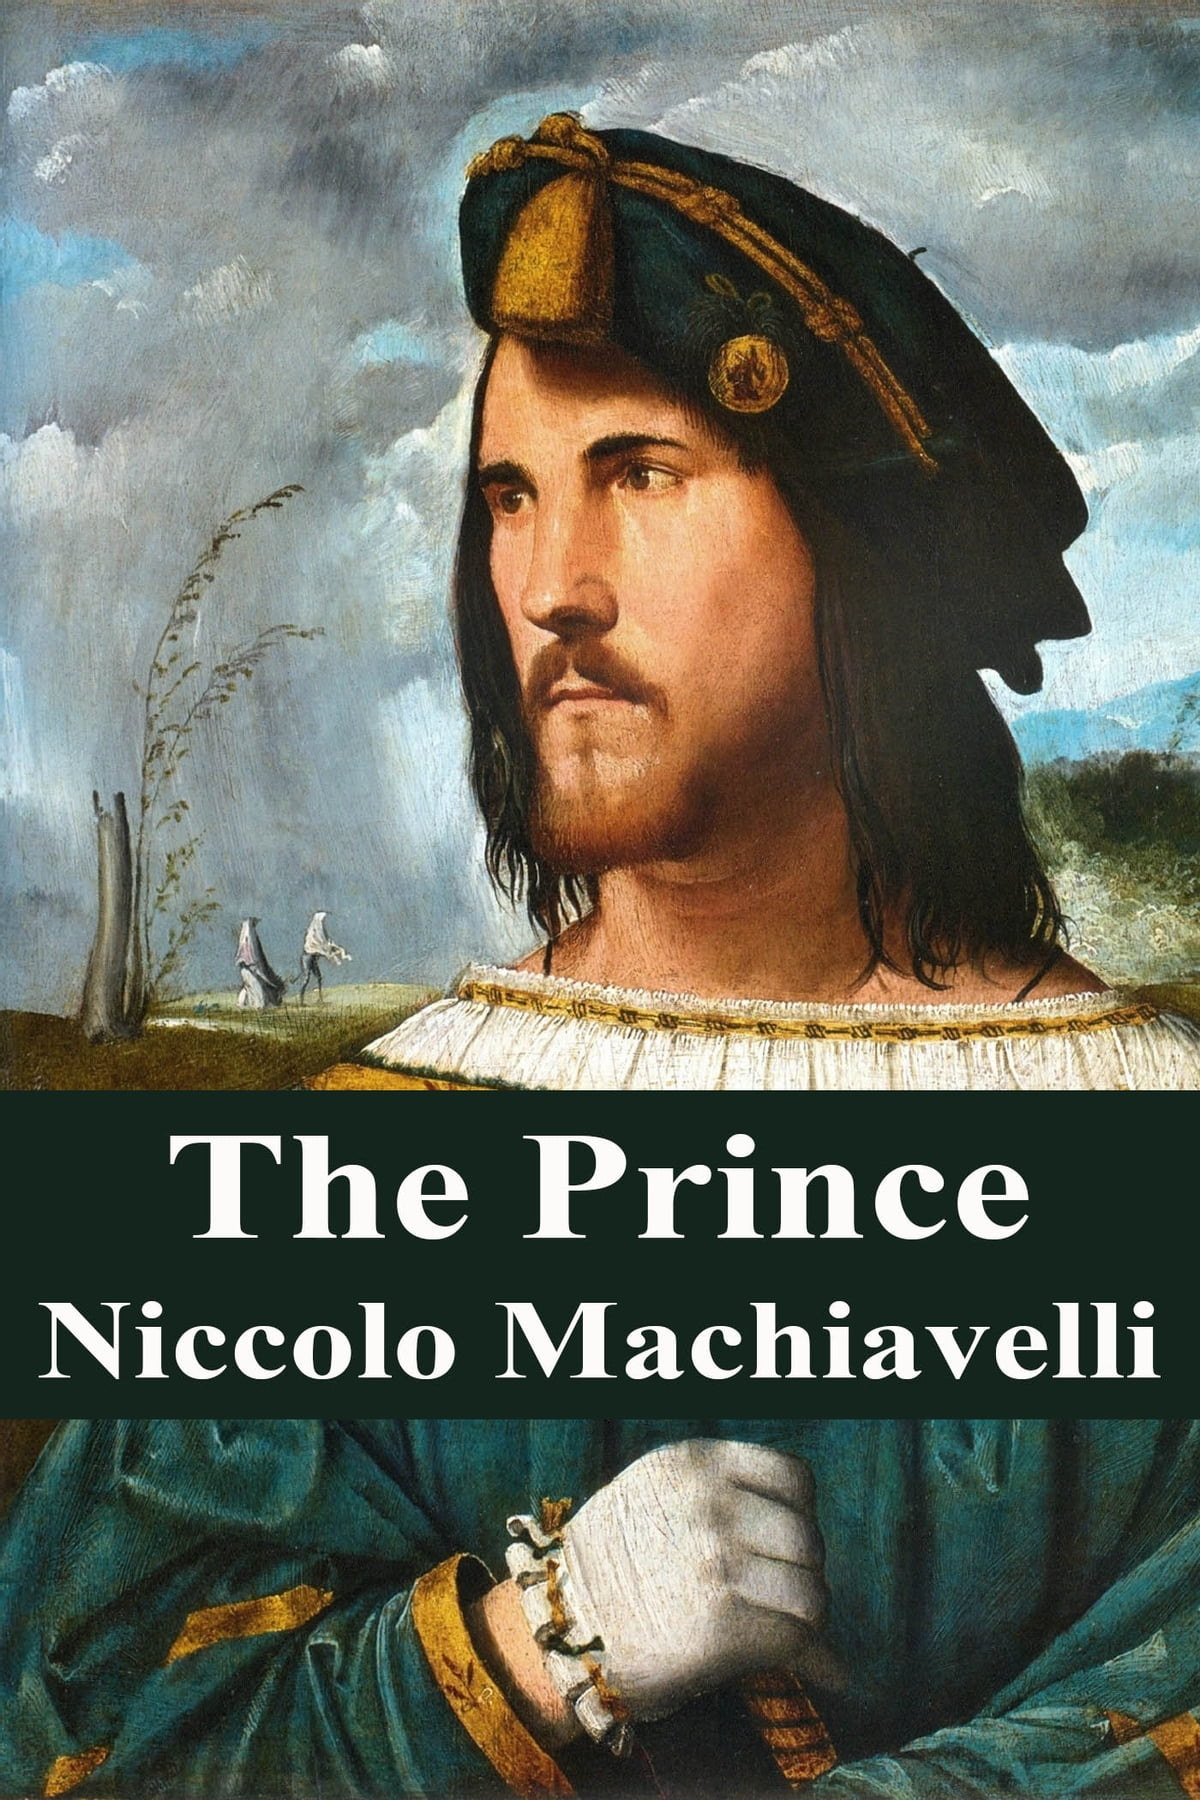 qualities good ruler based niccolo machiavelli s prince Machiavelli's prophetic prince, in other words, must have some of the qualities of a philosopher, as well as a religious reformer trying to reshape and remold human opinion, especially opinion.